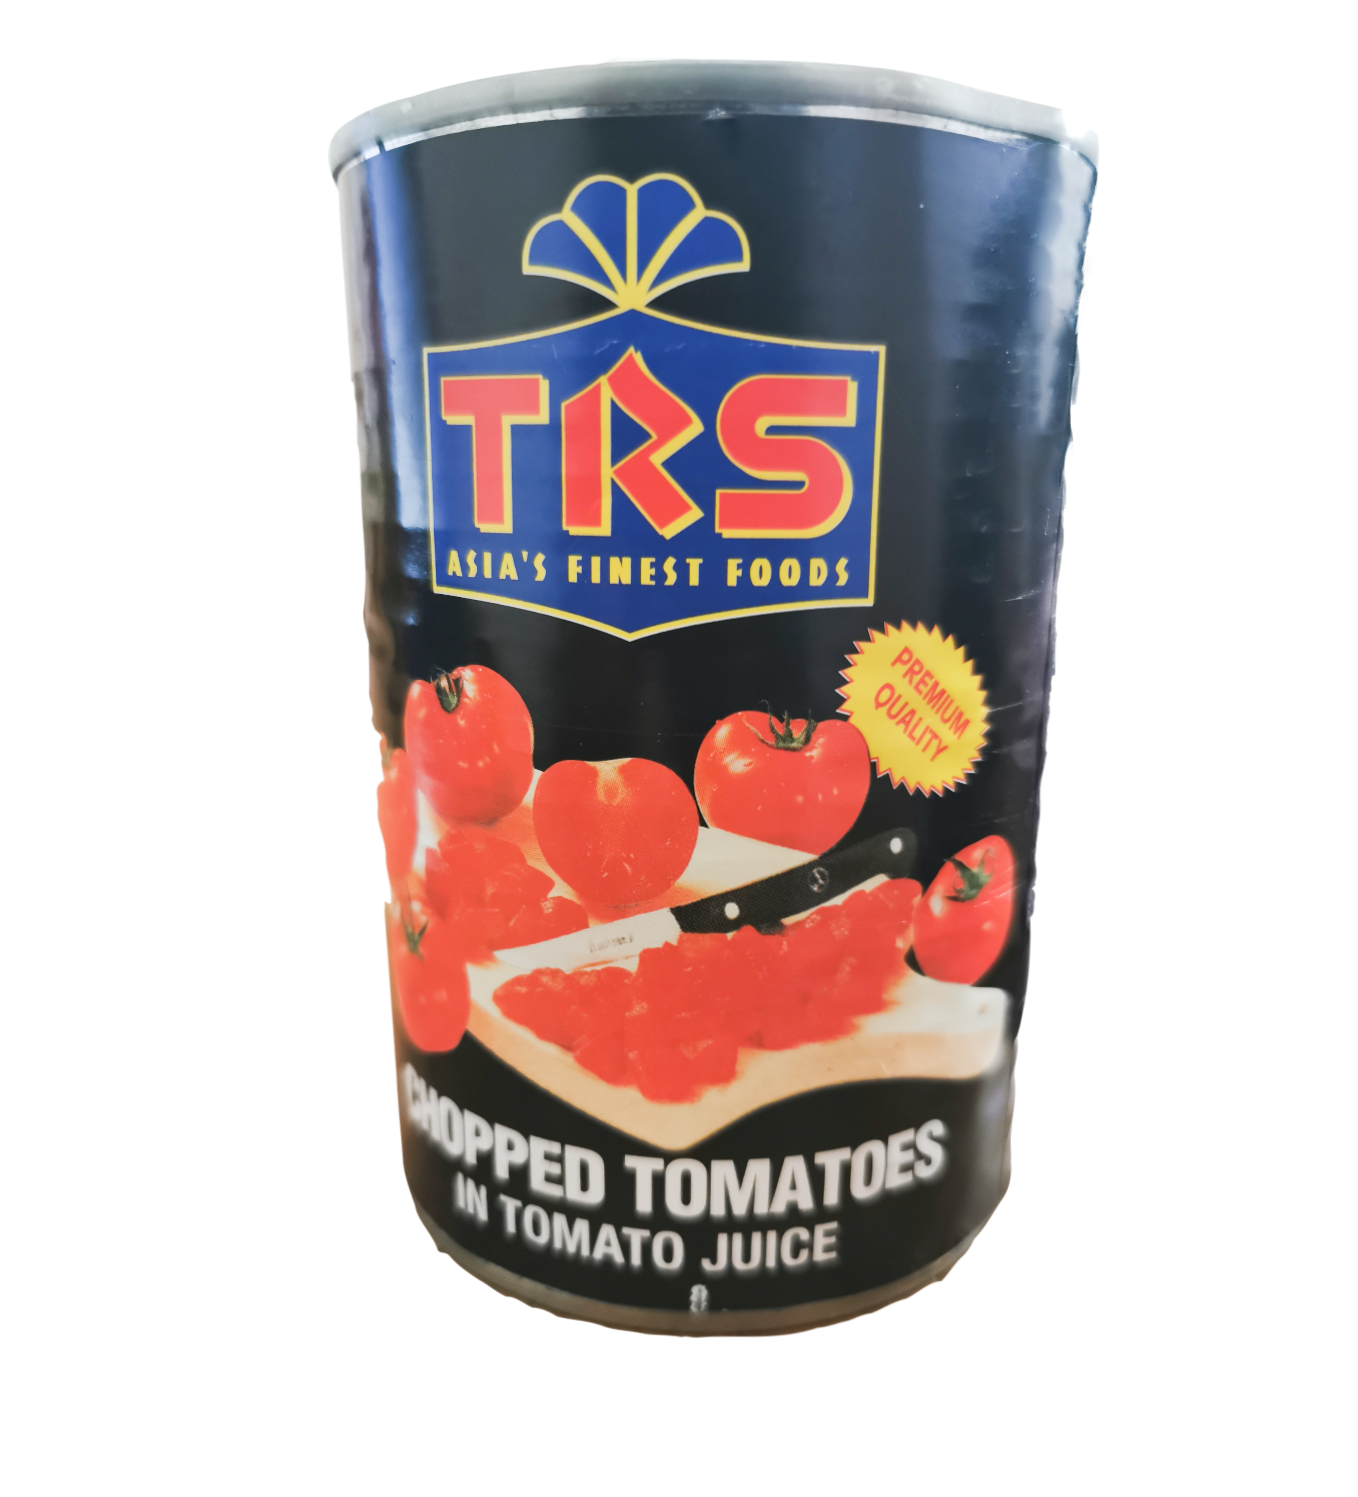 TRS Chopped Tomatoes in Tomato Juice